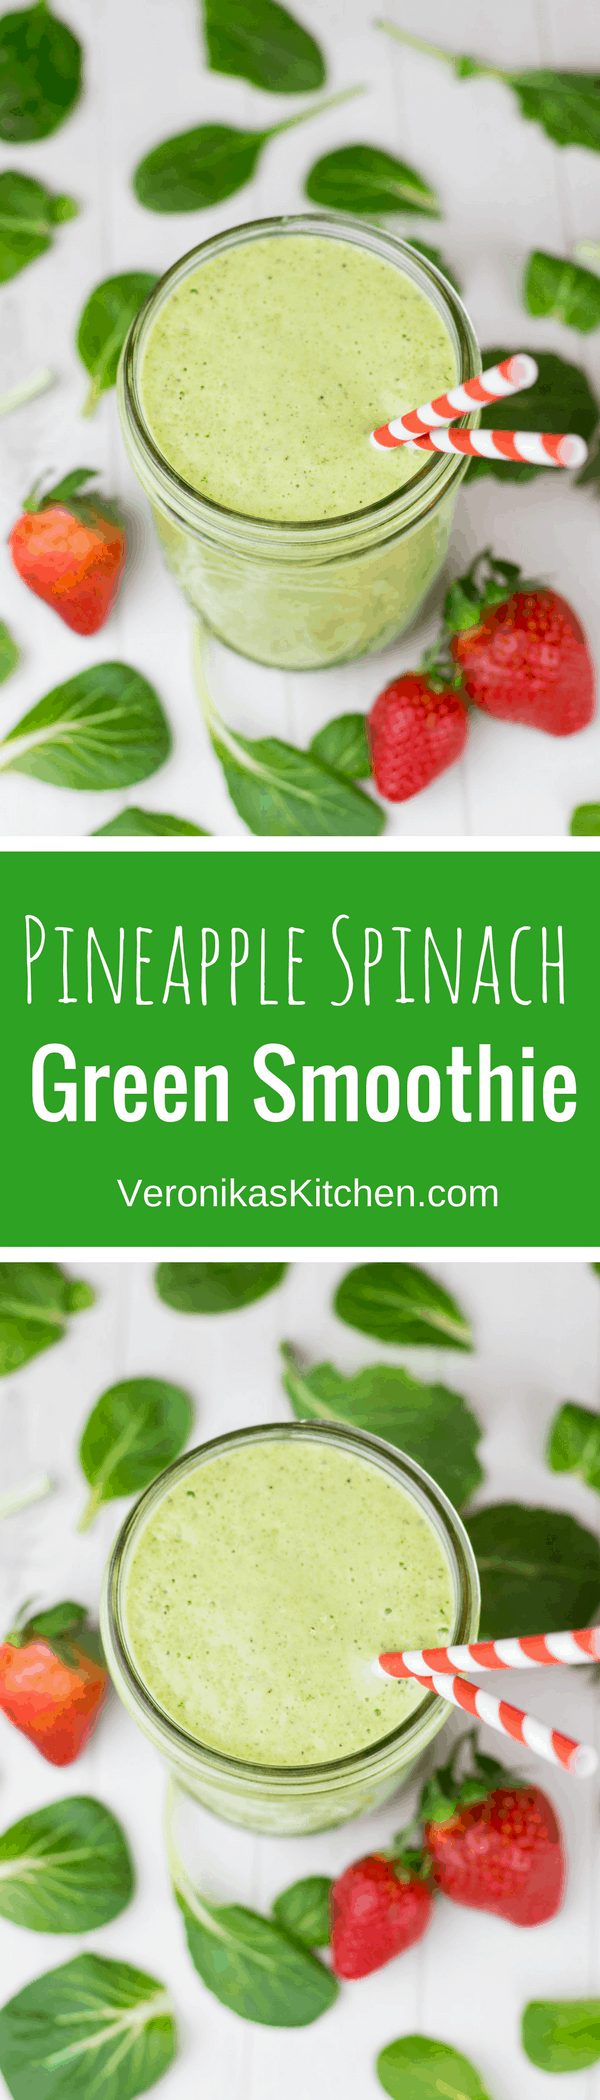 Pineapple Spinach Green Smoothie recipe with Chia seeds is a great healthy idea for breakfast, lunch, or a workout.